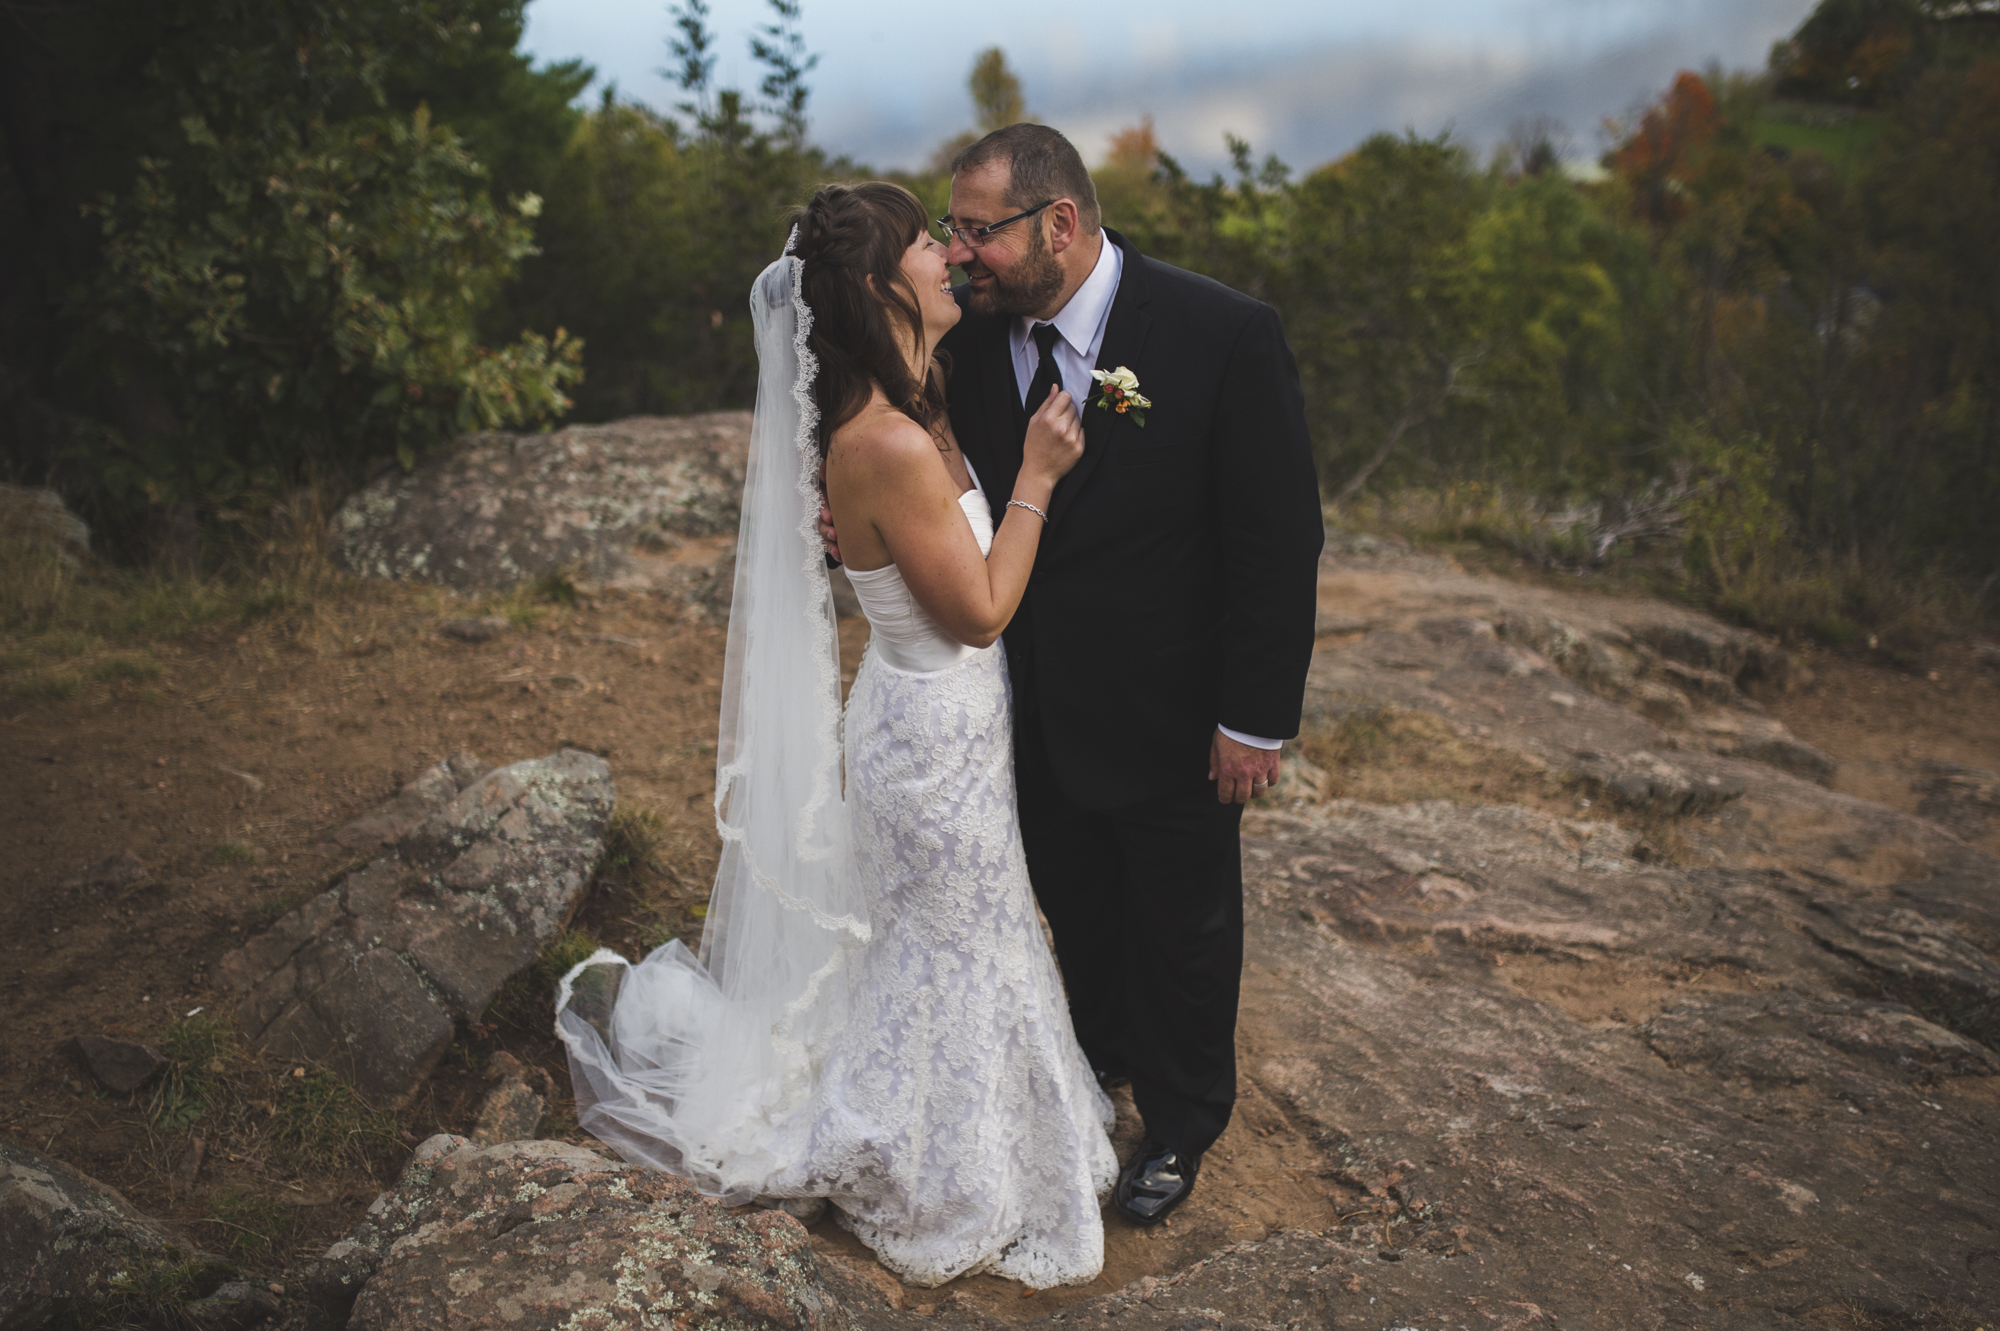 Wedding At The Cove Inn Westport Prince Edward County Ottawa And Destination Wedding